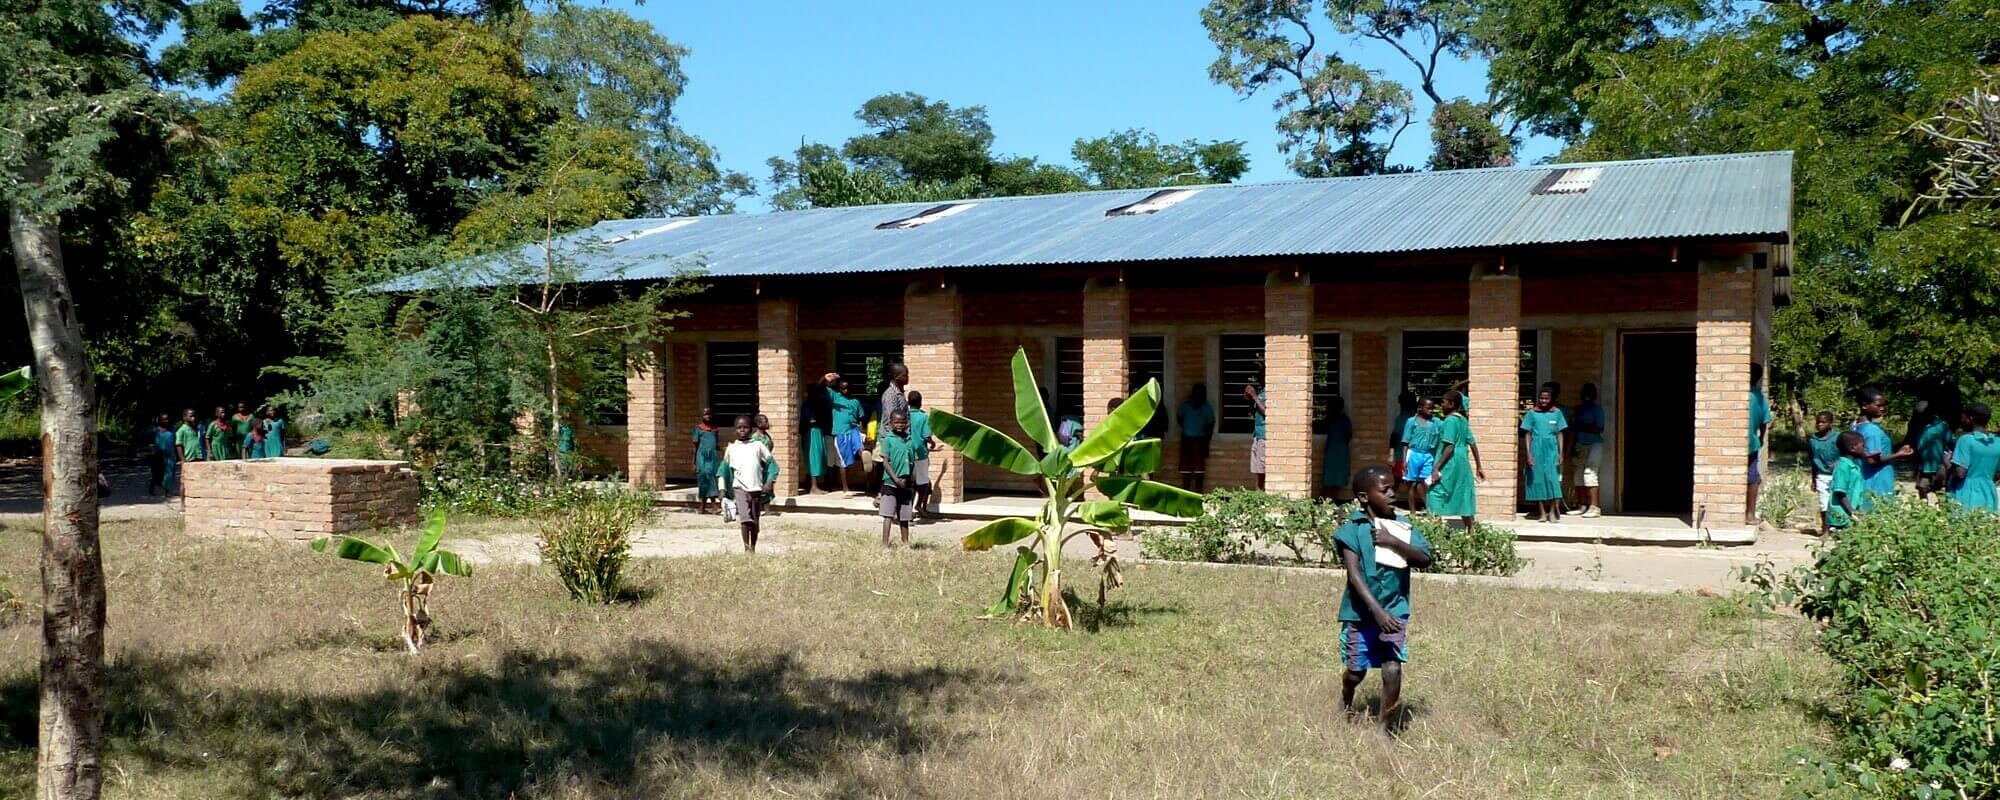 A primary school classroom in Malawi Africa